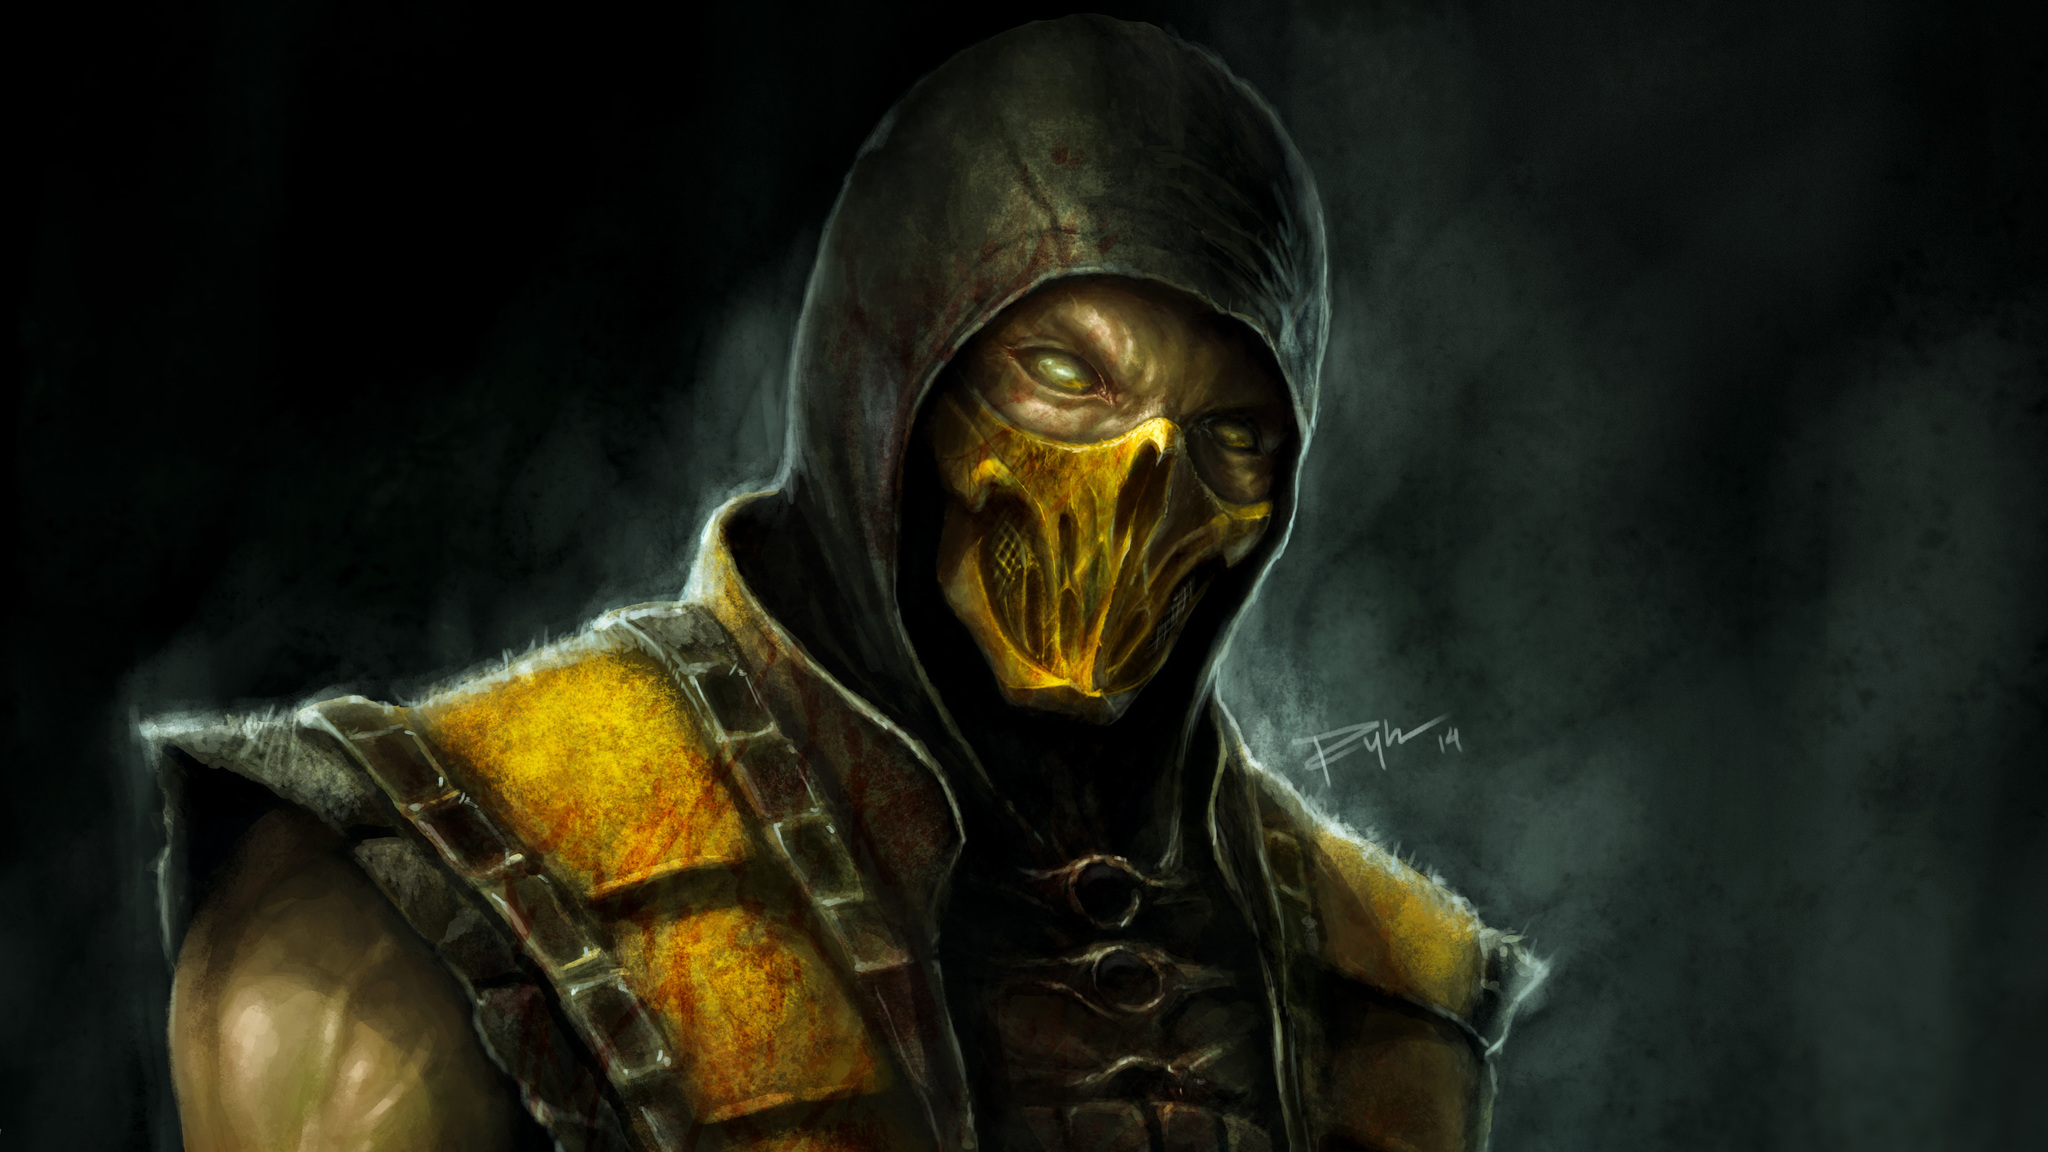 scorpion mortal kombat 11 wallpaper hd